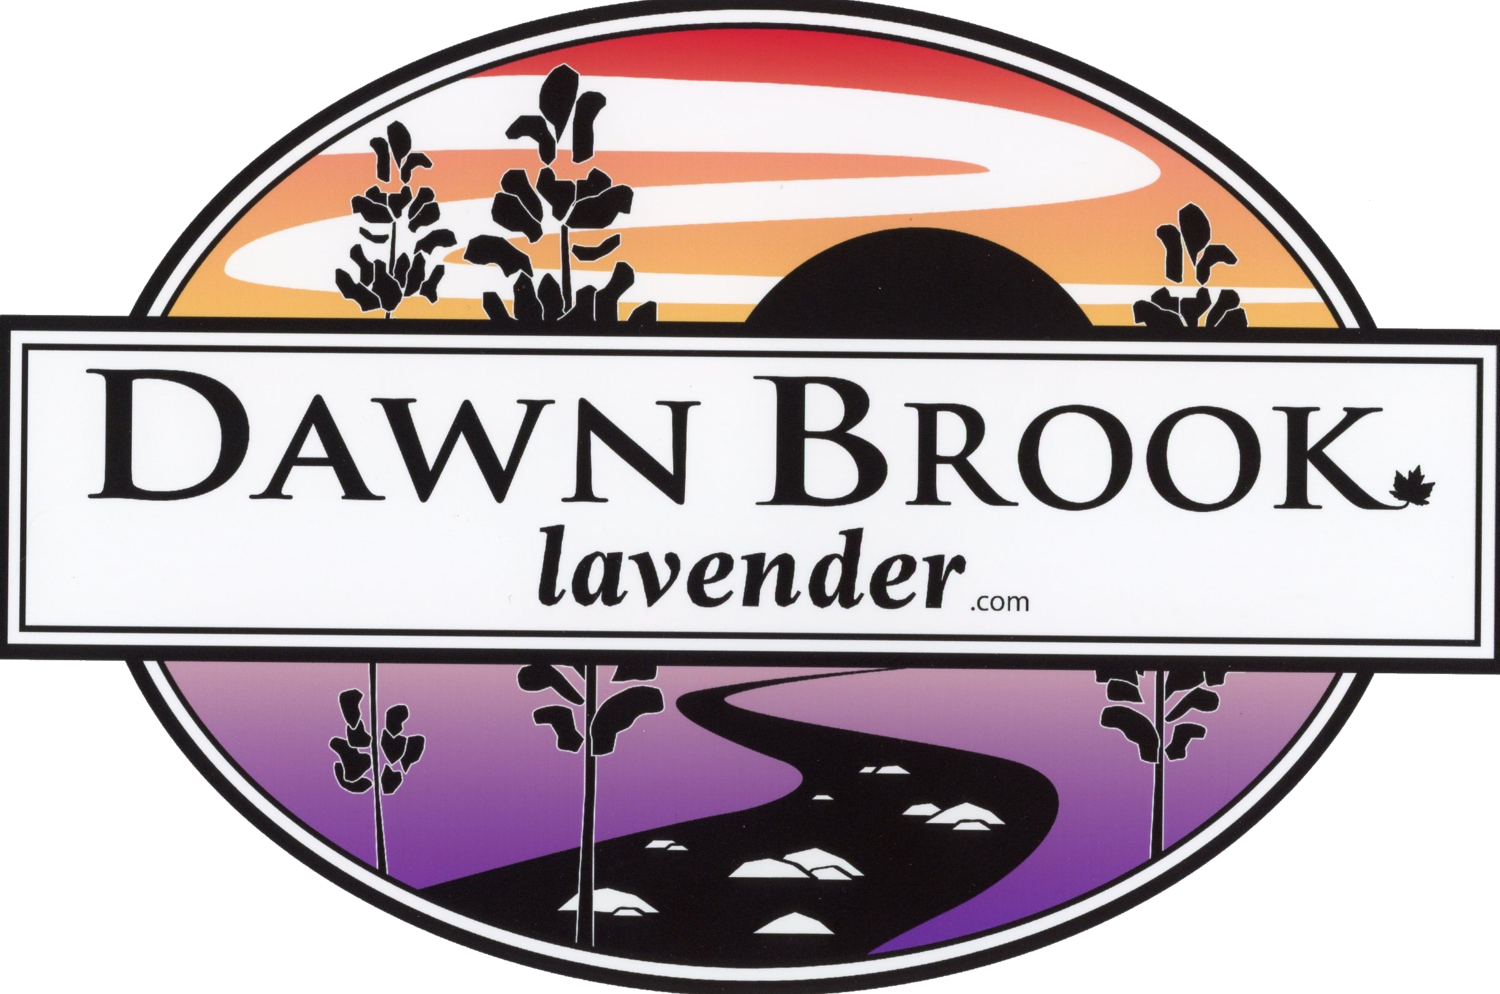 Dawn Brook Lavender